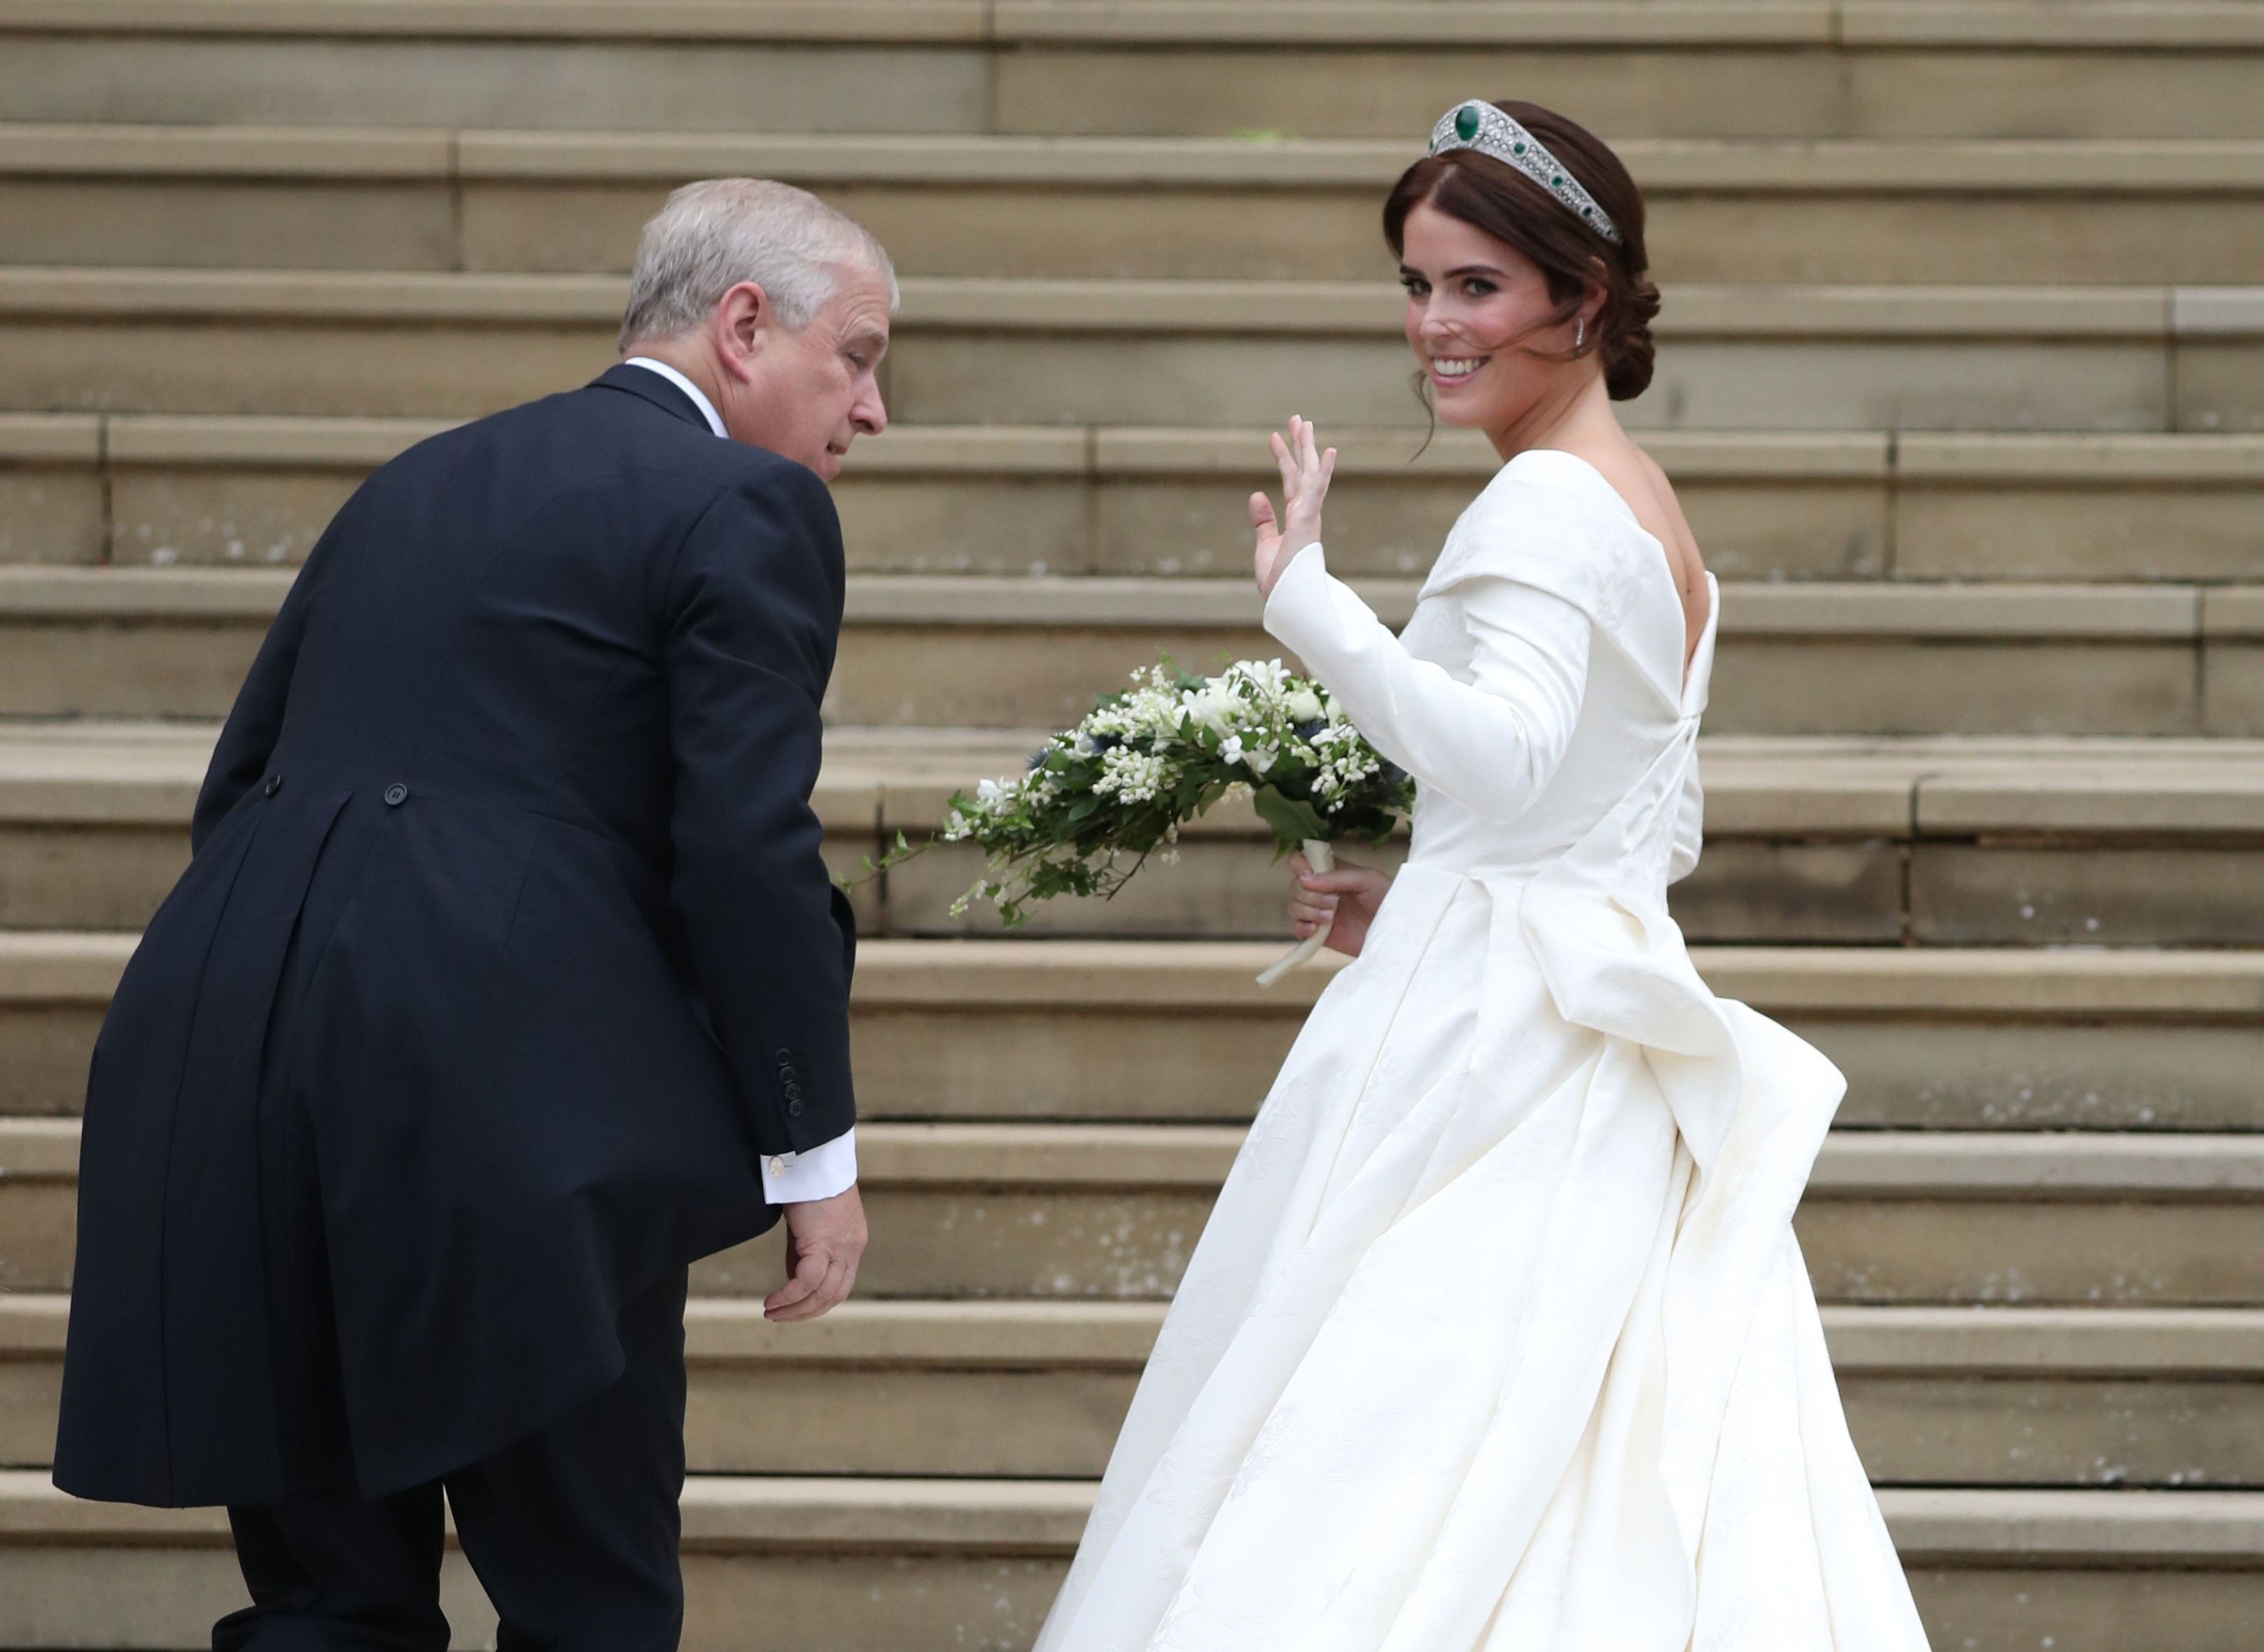 The mistake no-one noticed in Princess Eugenie's official wedding portrait